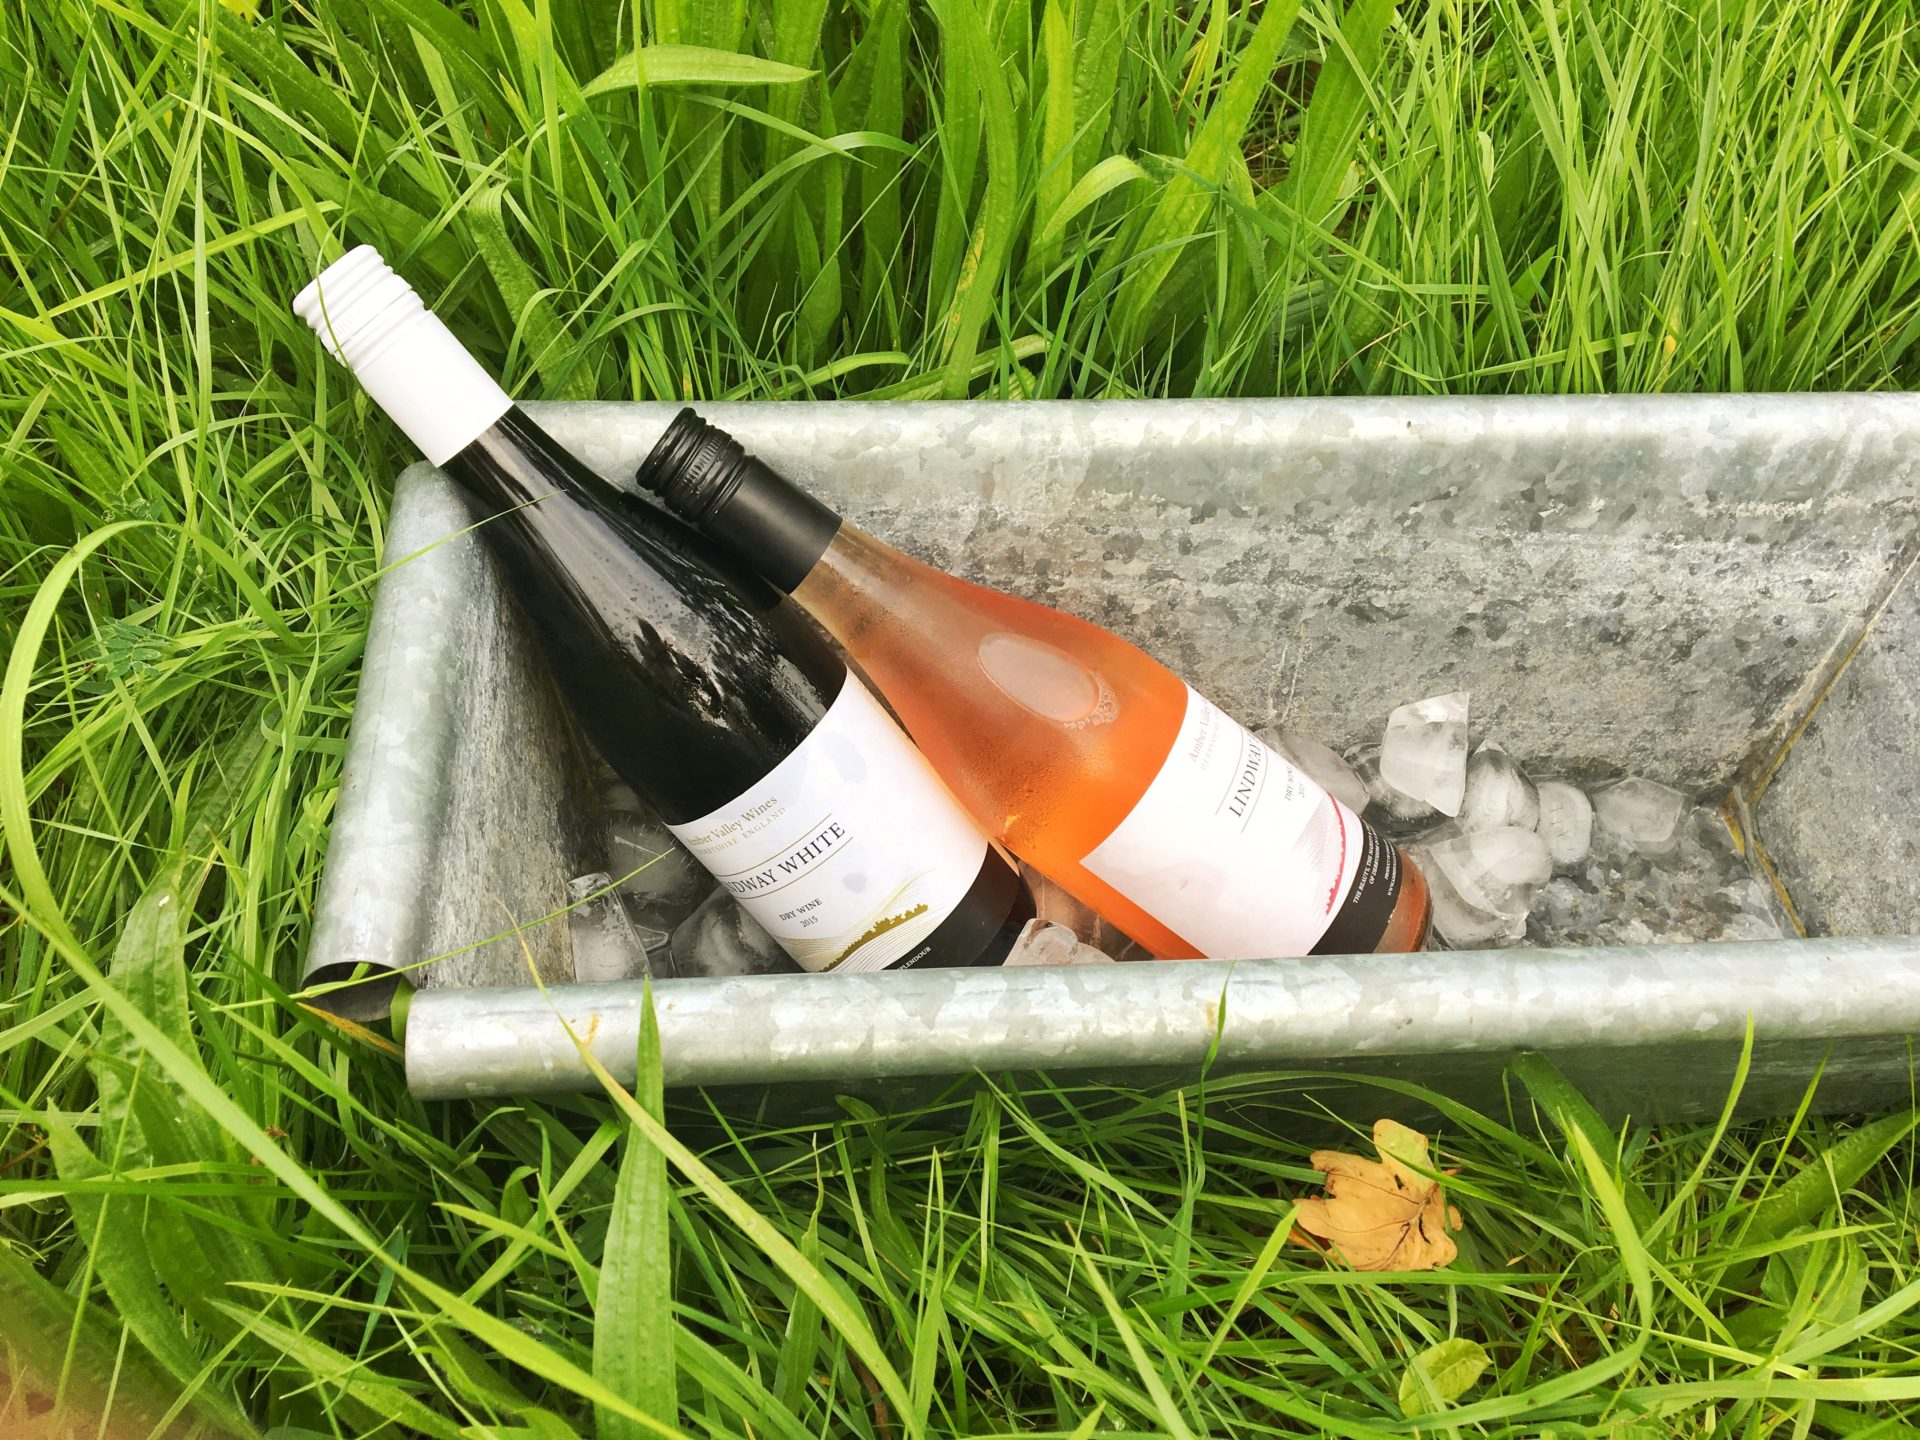 A bottle of the Lindway white and rose´ chilling in a silver cooler in long green grass - August 2016 (by Lucy Arterton)